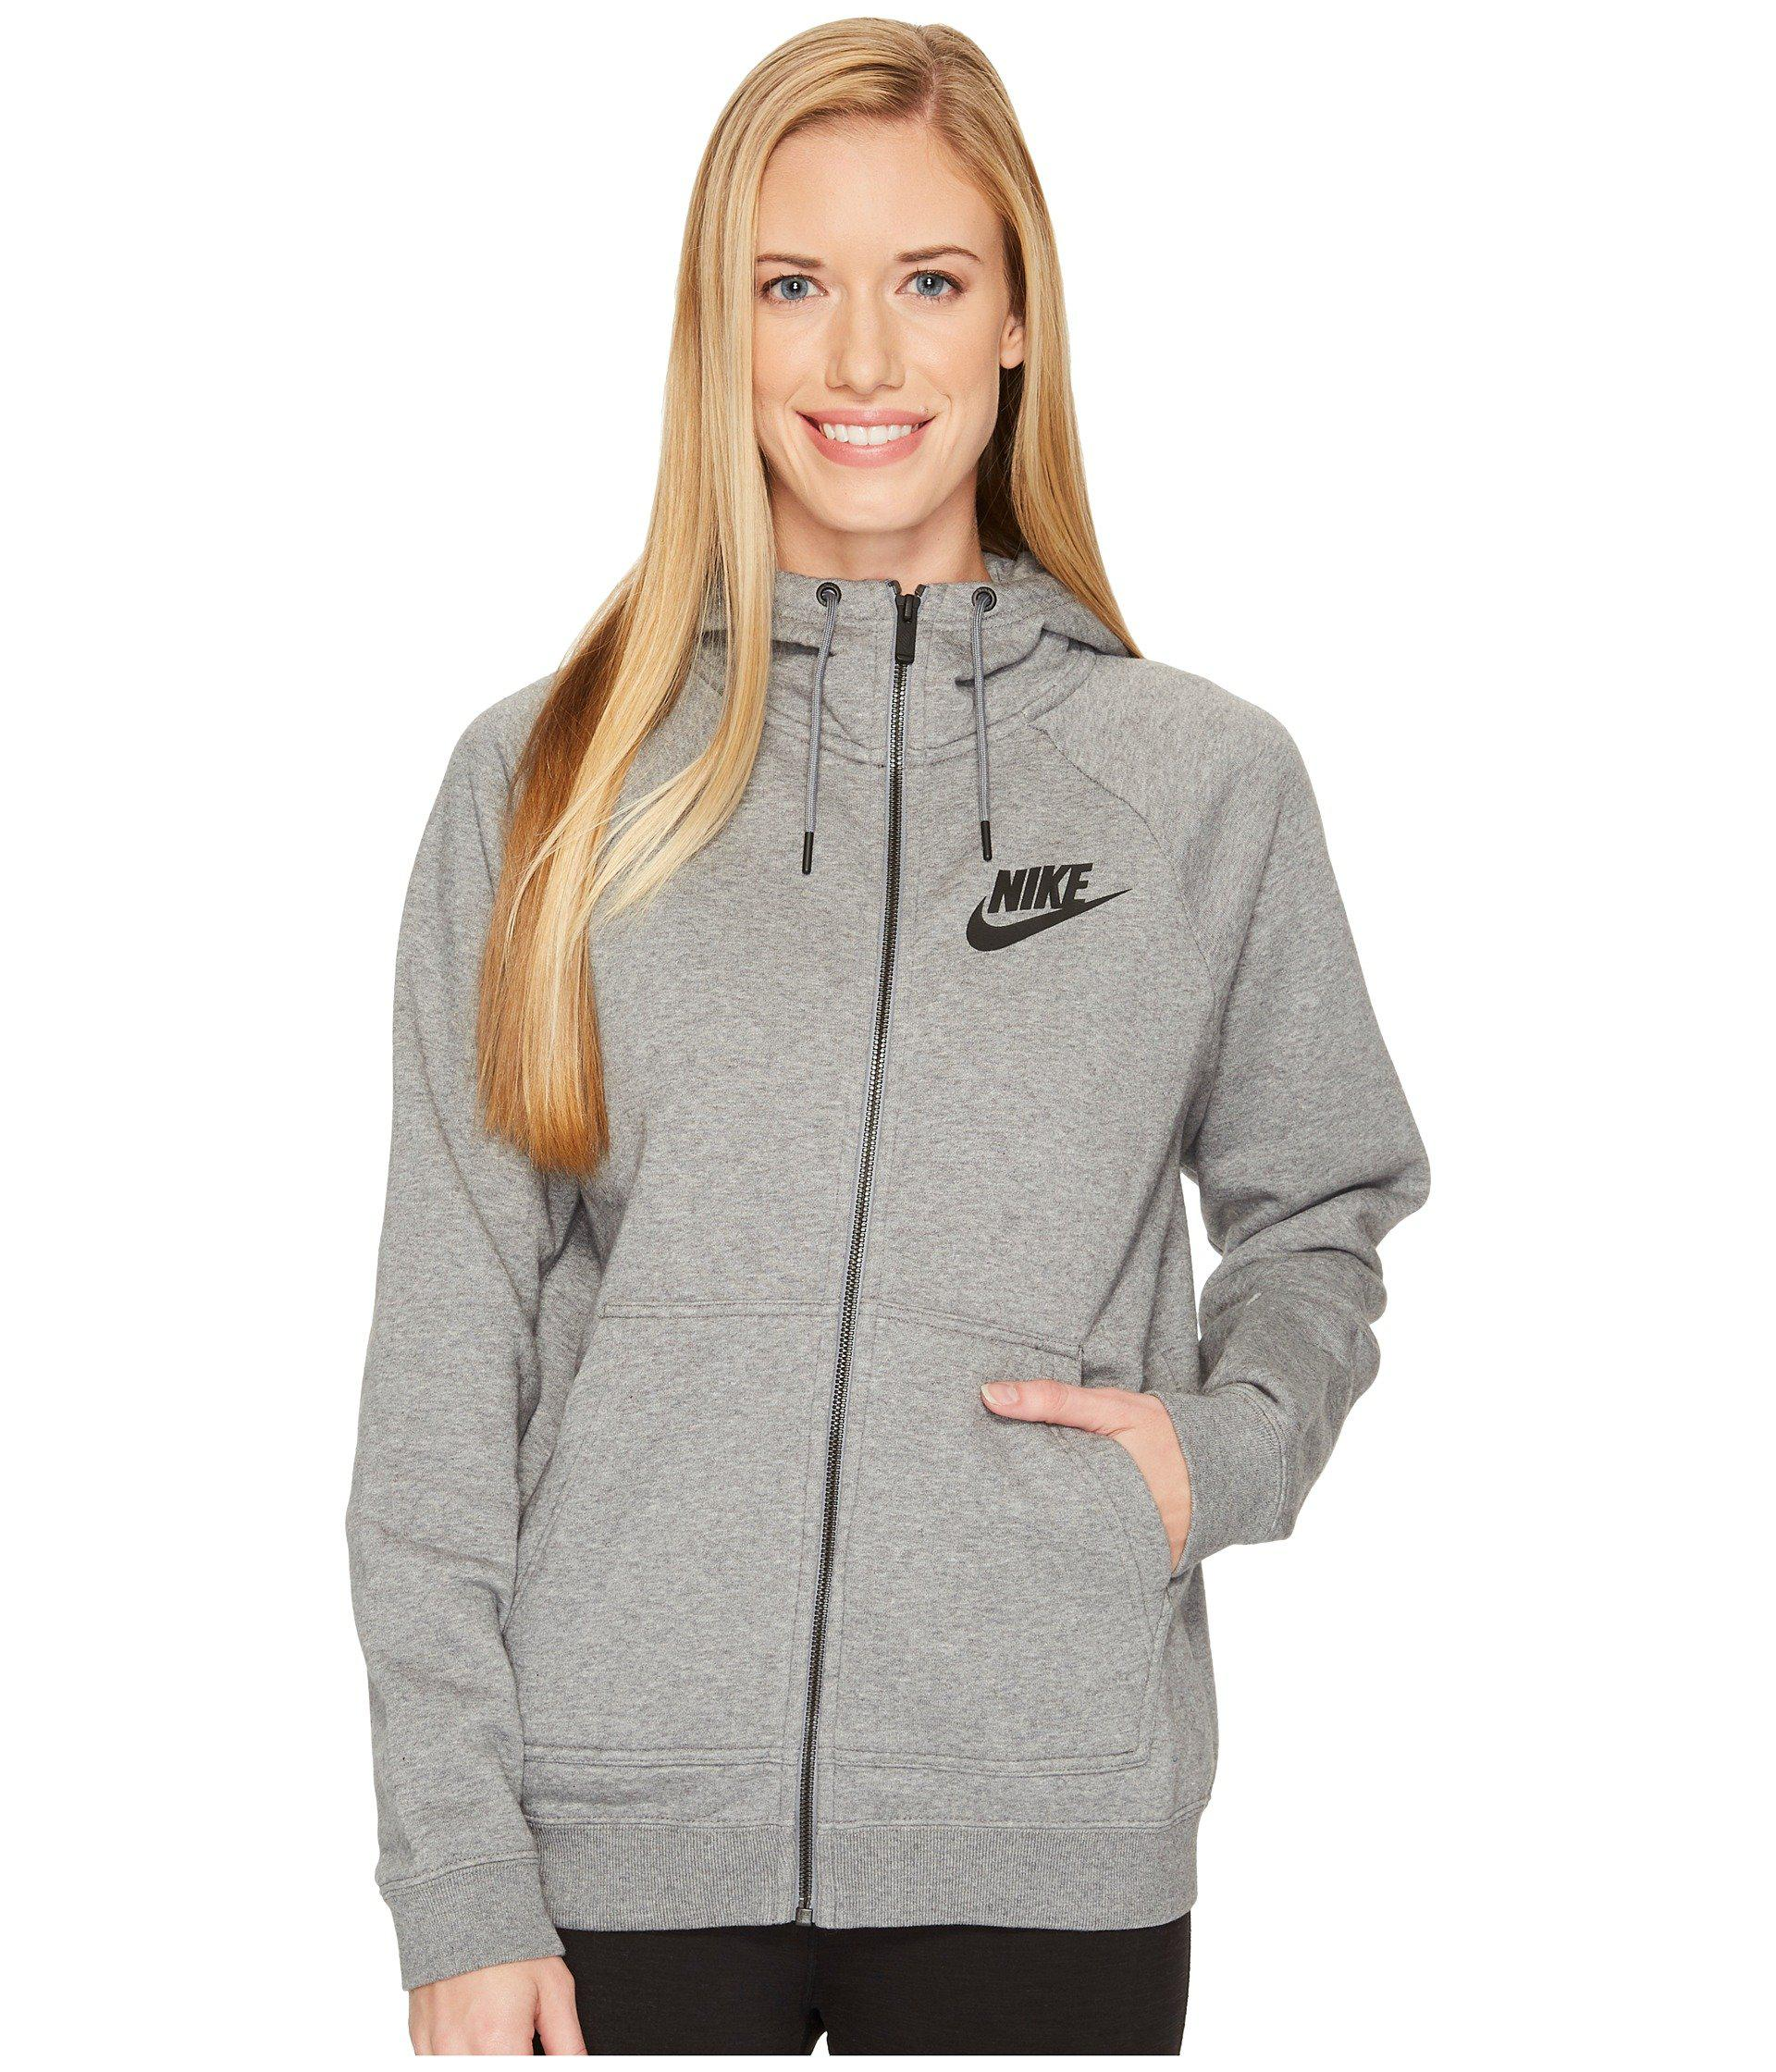 6205f39f1d6bb Lyst - Nike Sportswear Rally Full Zip Hoodie in Gray